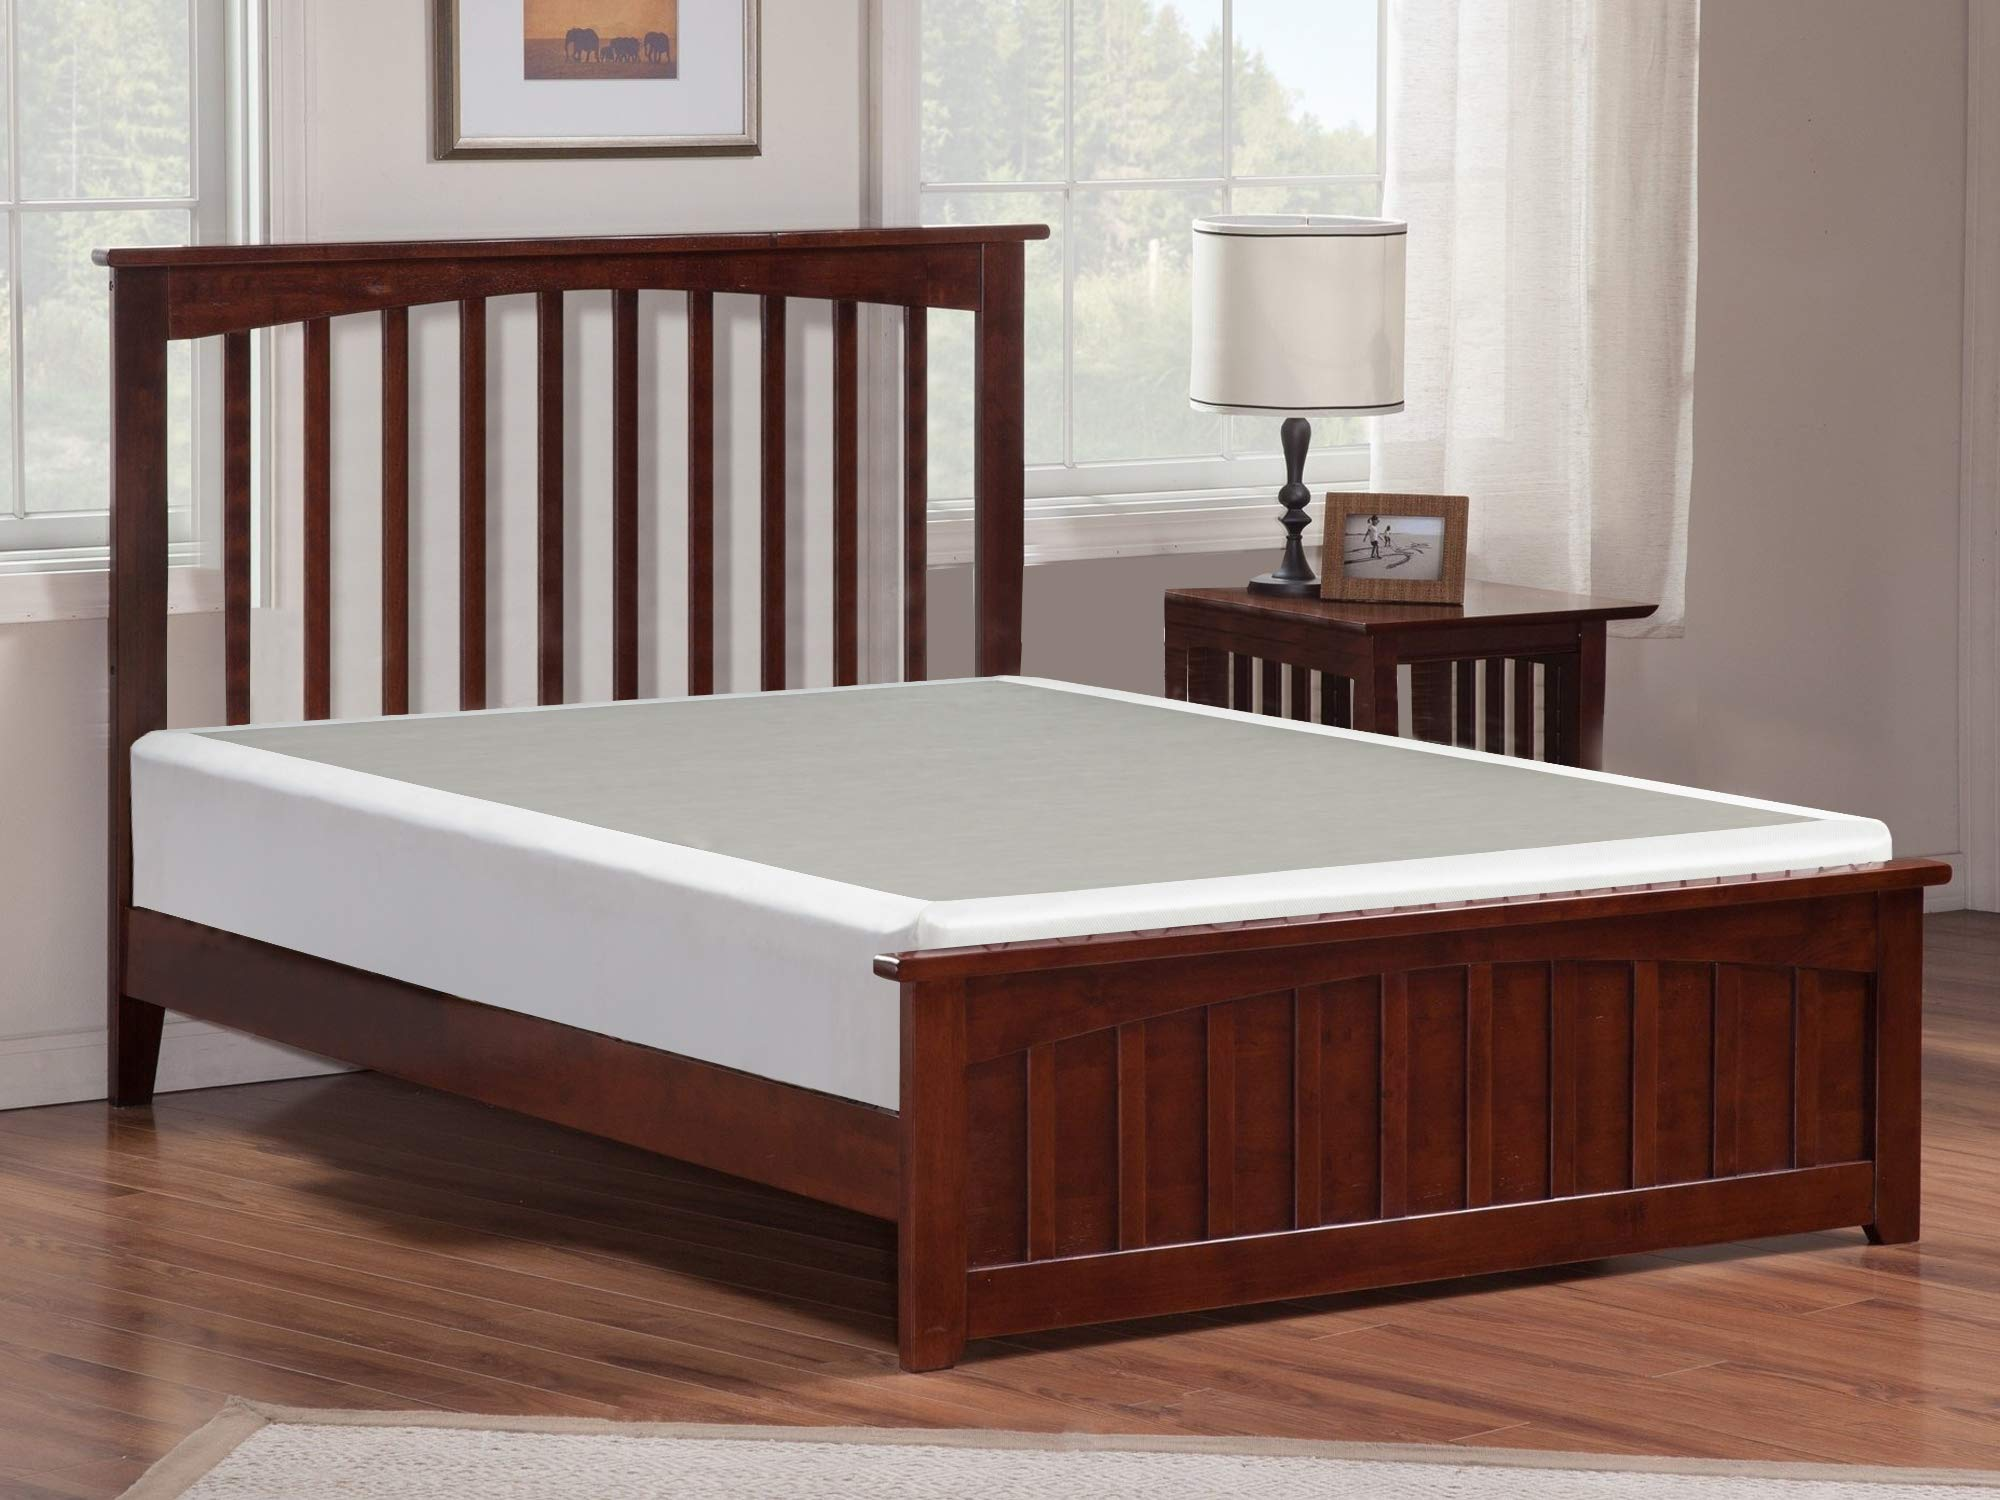 Mayton 4-Inch Full Size Box Spring Low Profile Mattress Foundation/Strong Structure, 53x74